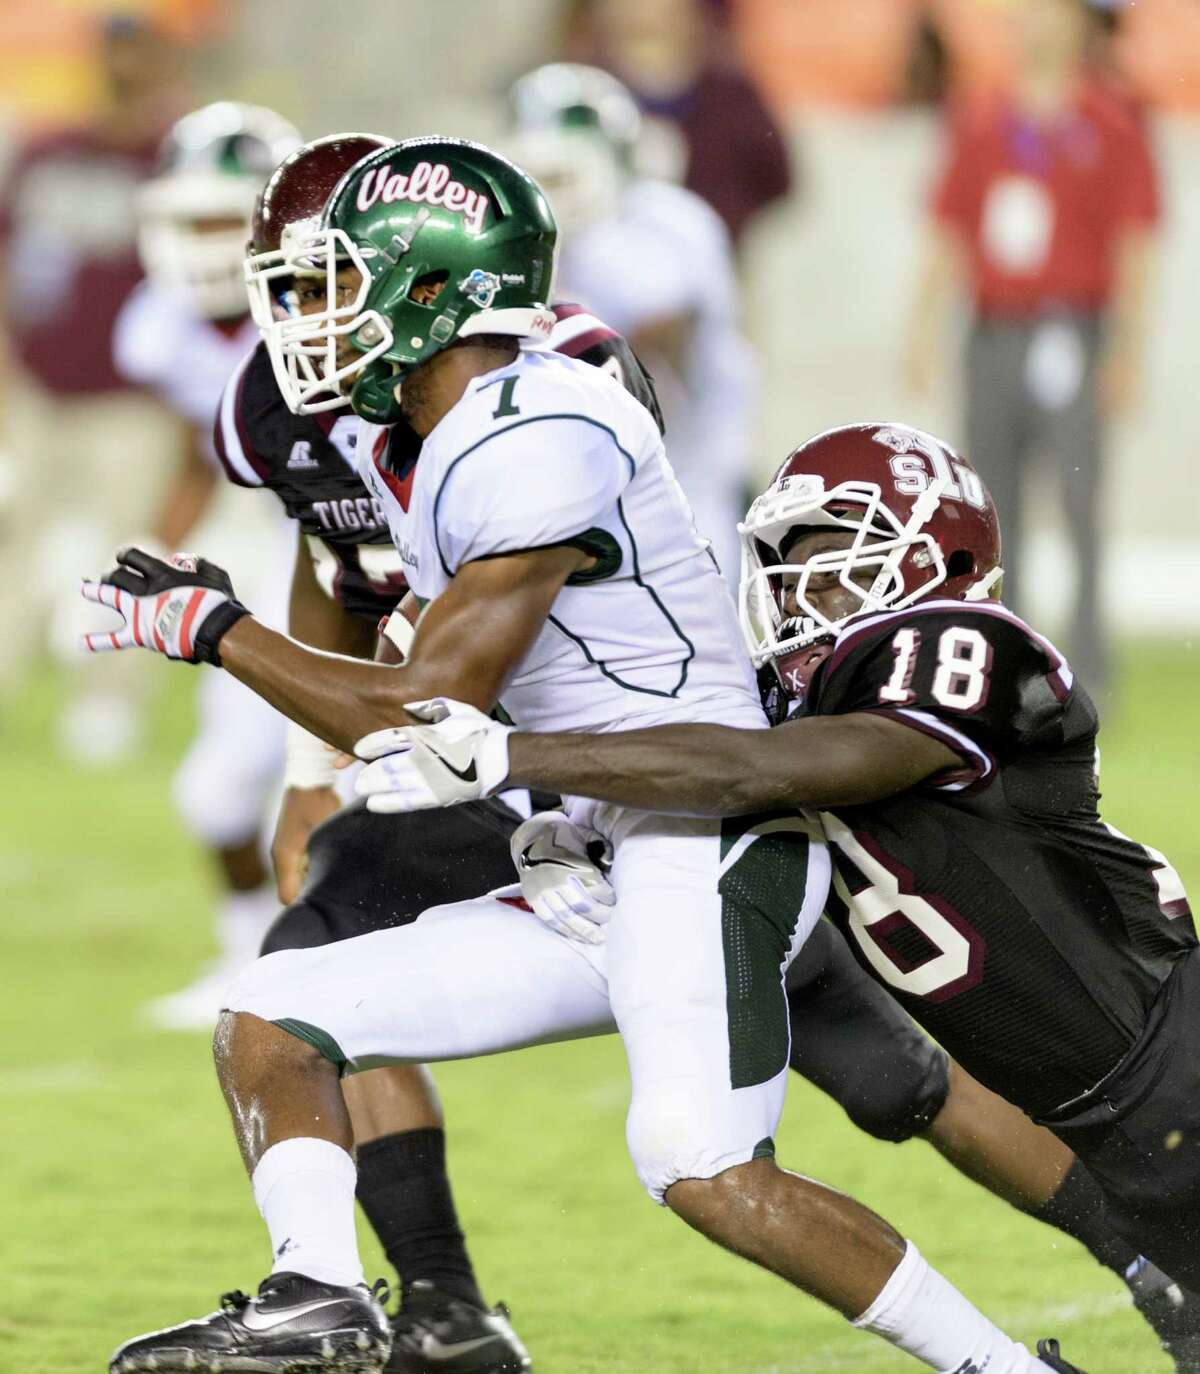 Tre Simms (7) of the Mississippi Valley State Devils is brought down by Jeremiah Credit (18) of the TSU Tigers in the second half of a SWAC college football game on Saturday, September 17, 2016 at BBVA Compass Stadium in Houston Texas.